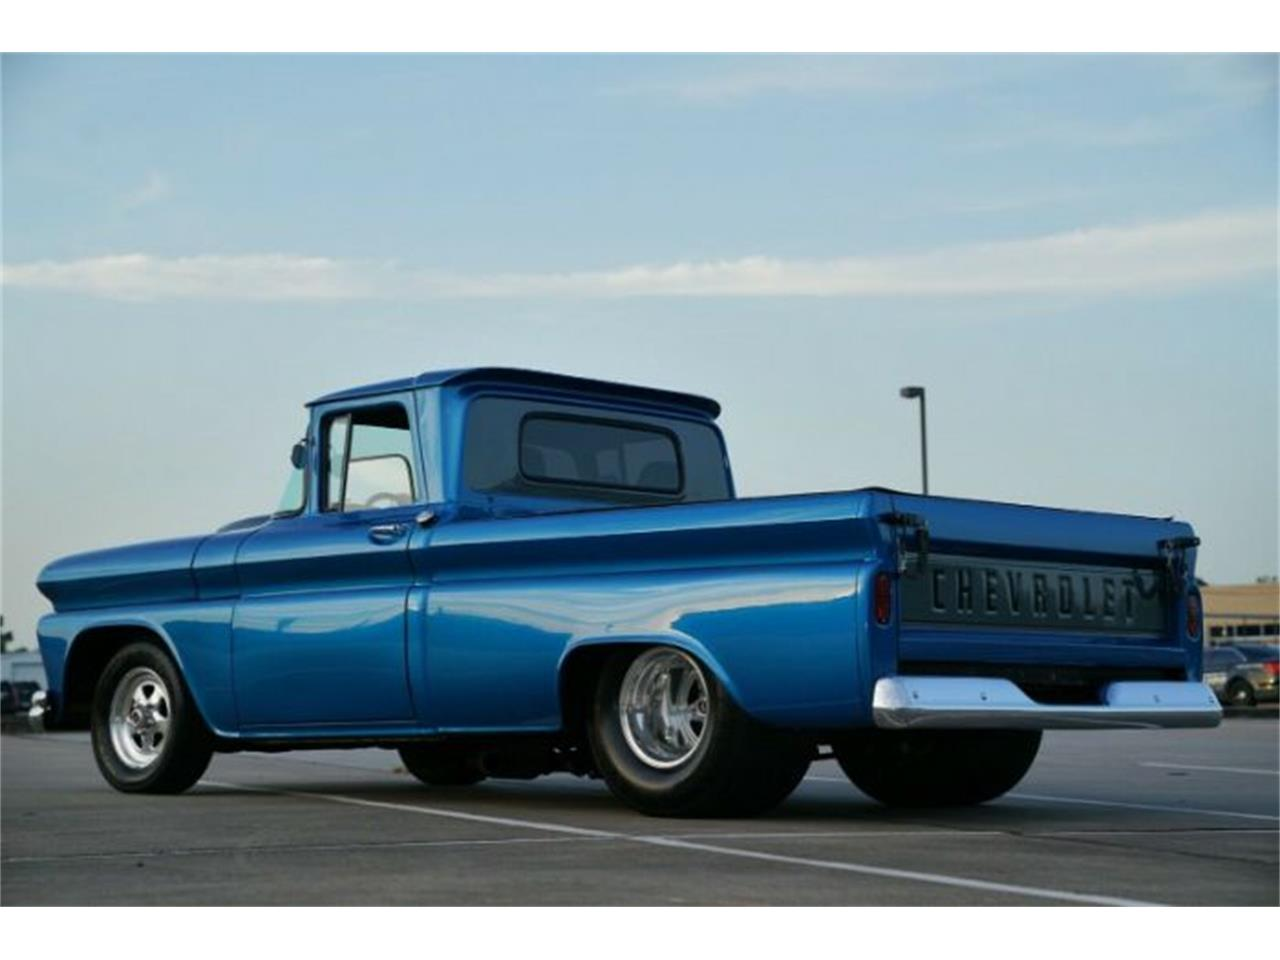 Large Picture of '61 Chevrolet C10 located in Michigan - $38,495.00 Offered by Classic Car Deals - R0XD